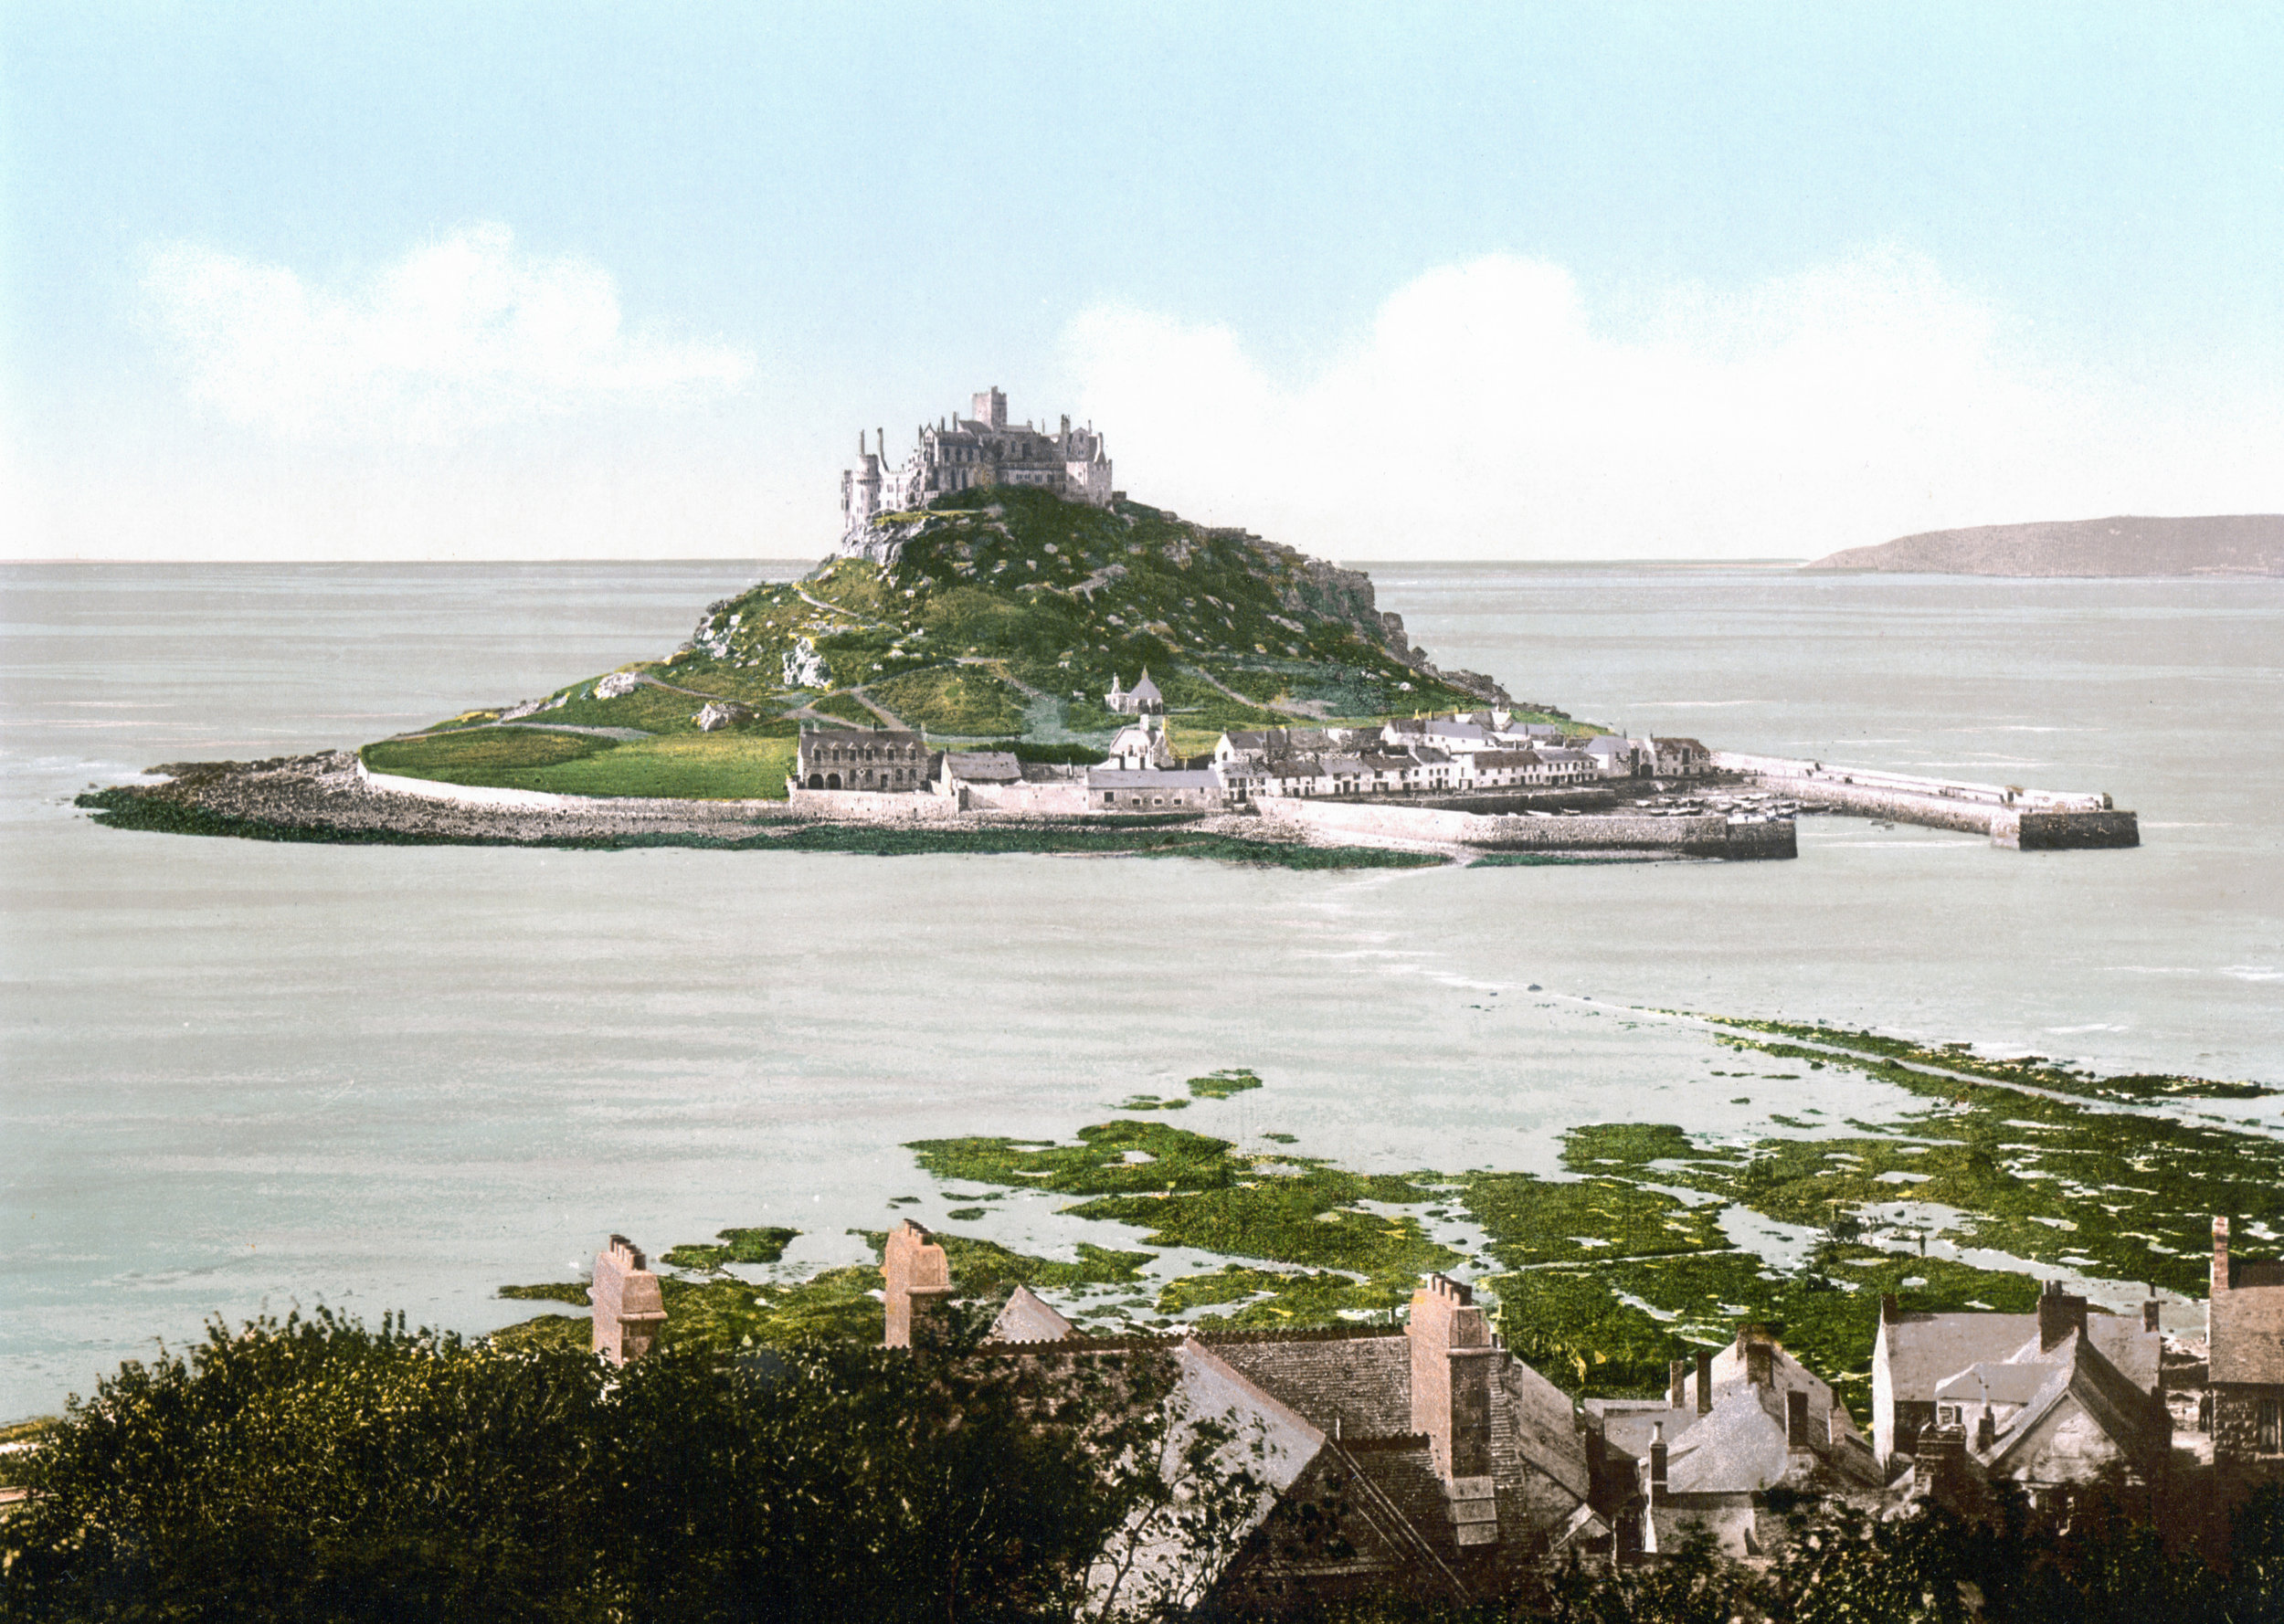 1. St Michael's Mount - On your doorstep is an amazing and unique place to explore. An imposing sight with an amazingly rich history sits just 400 yards away from Marazion across the bay. It's an unmissable place to visit during your stay.Whilst the castle and gardens are closed until March, a visit here with a walk over to the Mount and stroll around the quaint harbour is a must.